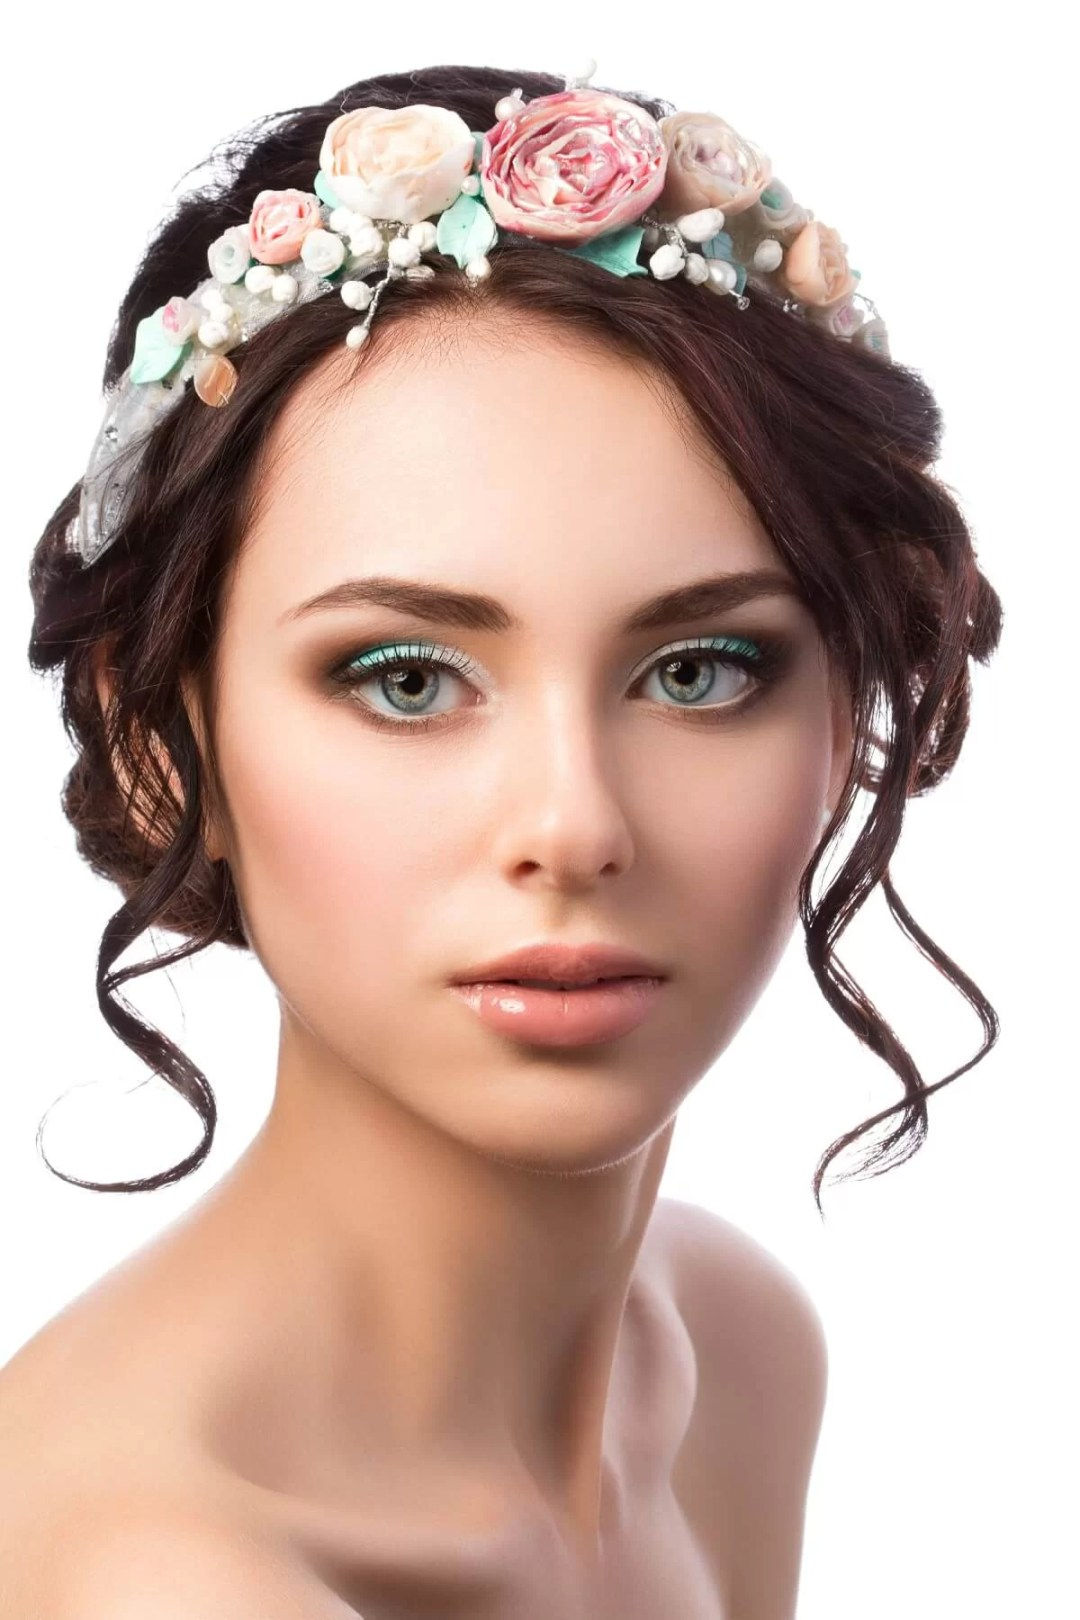 An Elegant Bridal Look with Shimmery Eyes and Flower Crown